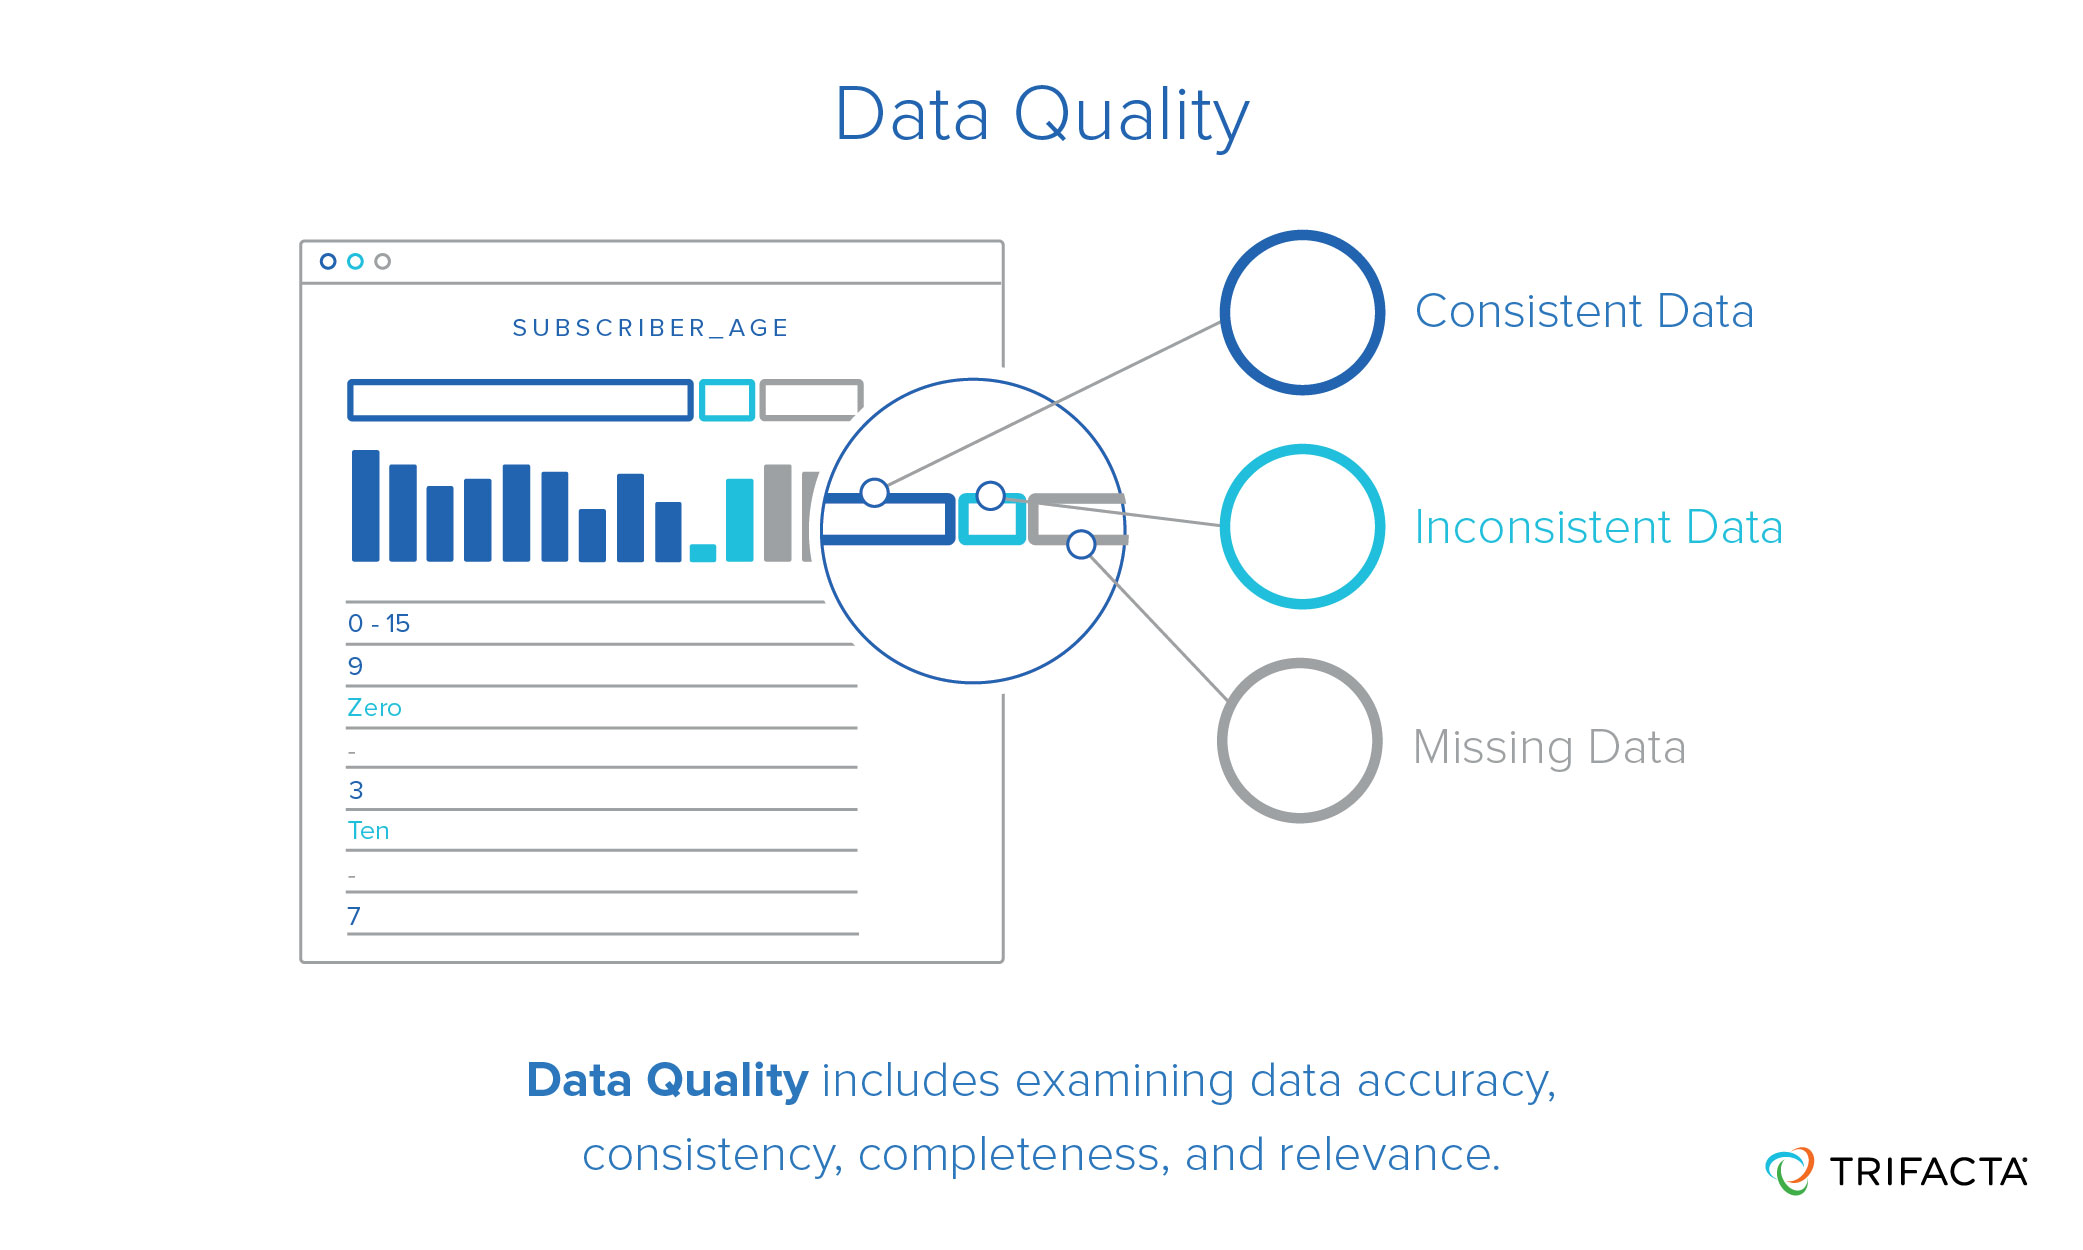 data quality includes examining data accuracy, consistency, completeness, and relevance